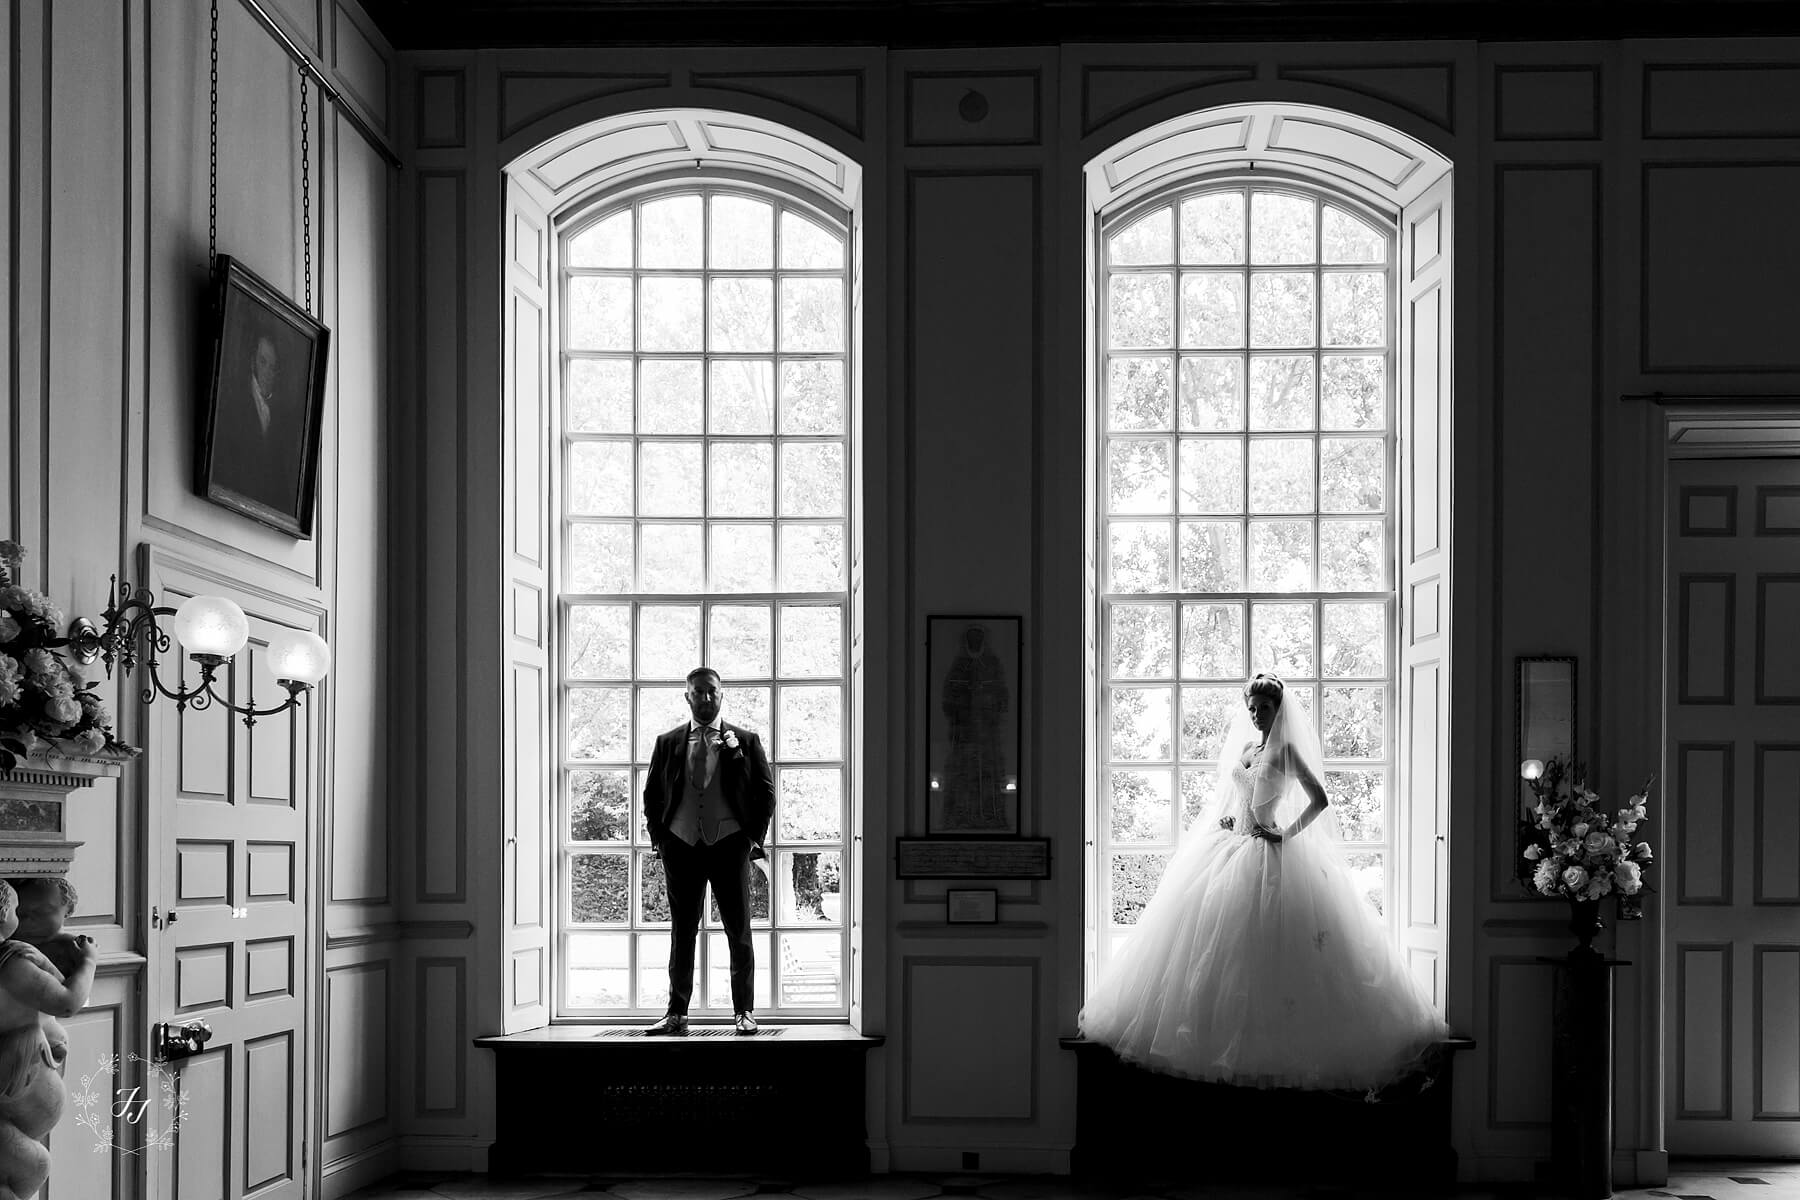 Mrs Hinch Wedding Photograph at Gosfield Hall